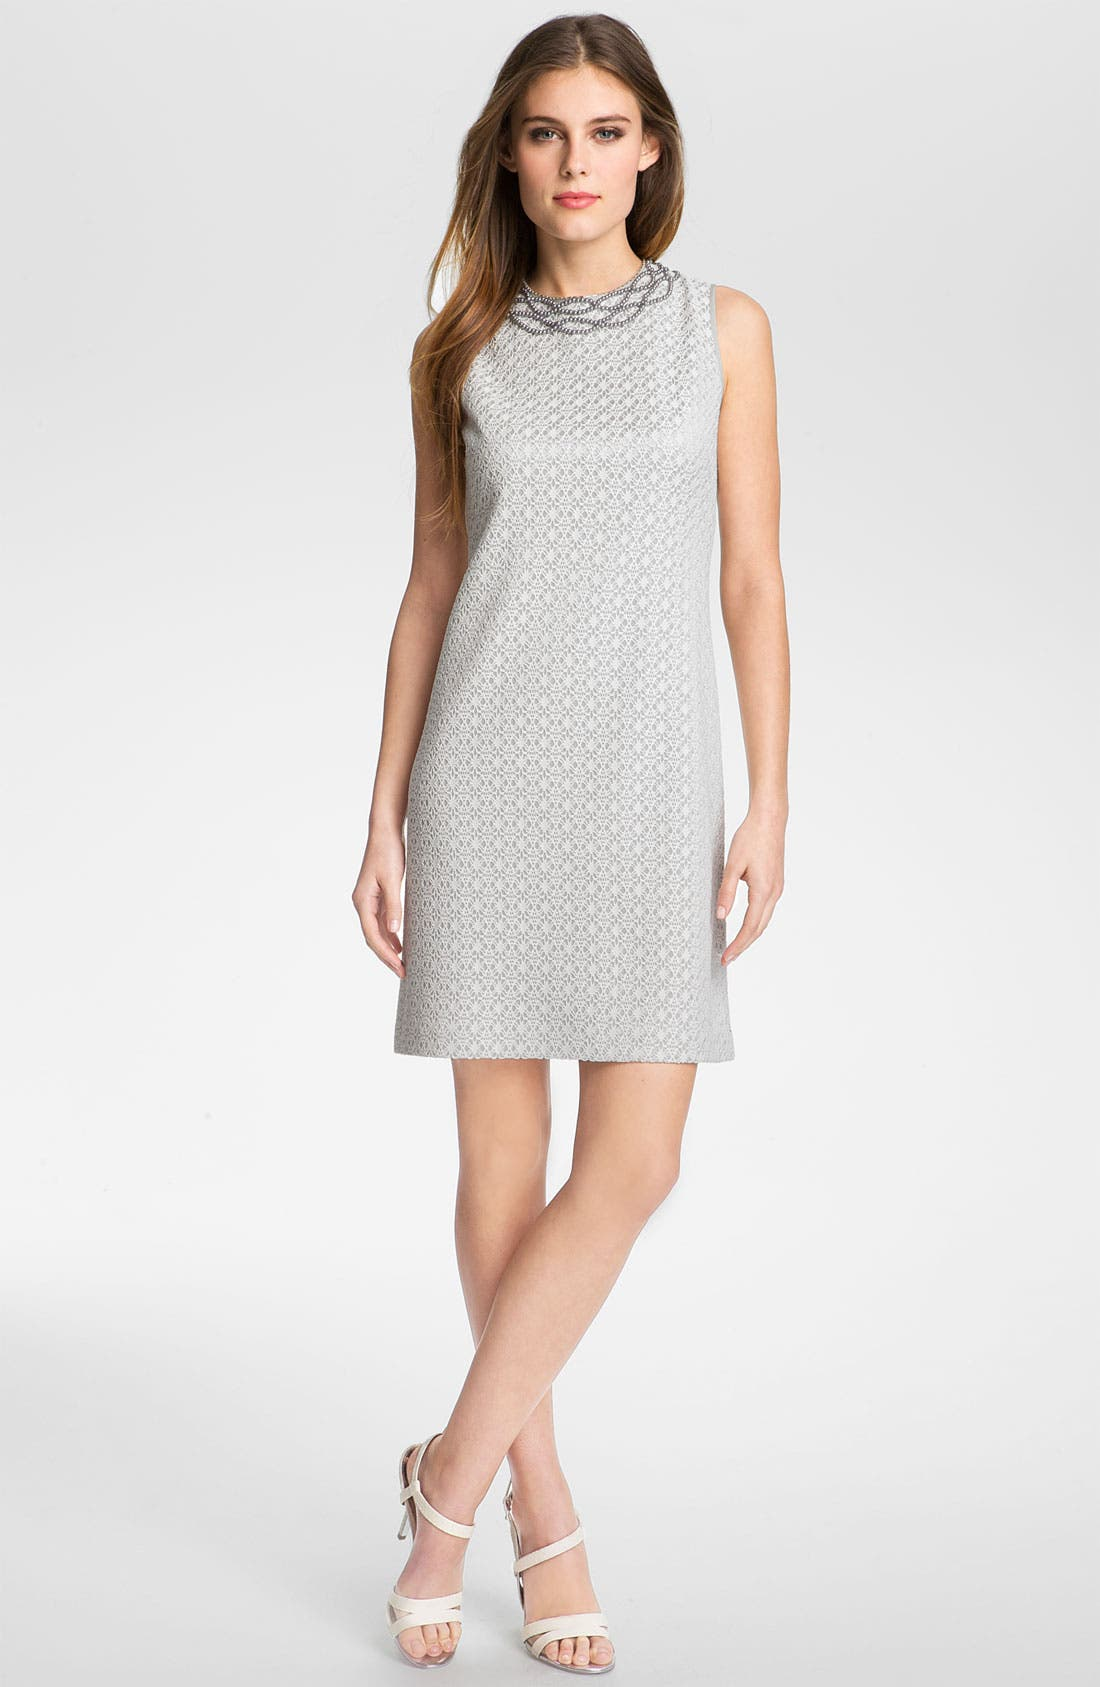 Alternate Image 1 Selected - Adrianna Papell Embellished Lace Shift Dress (Plus)